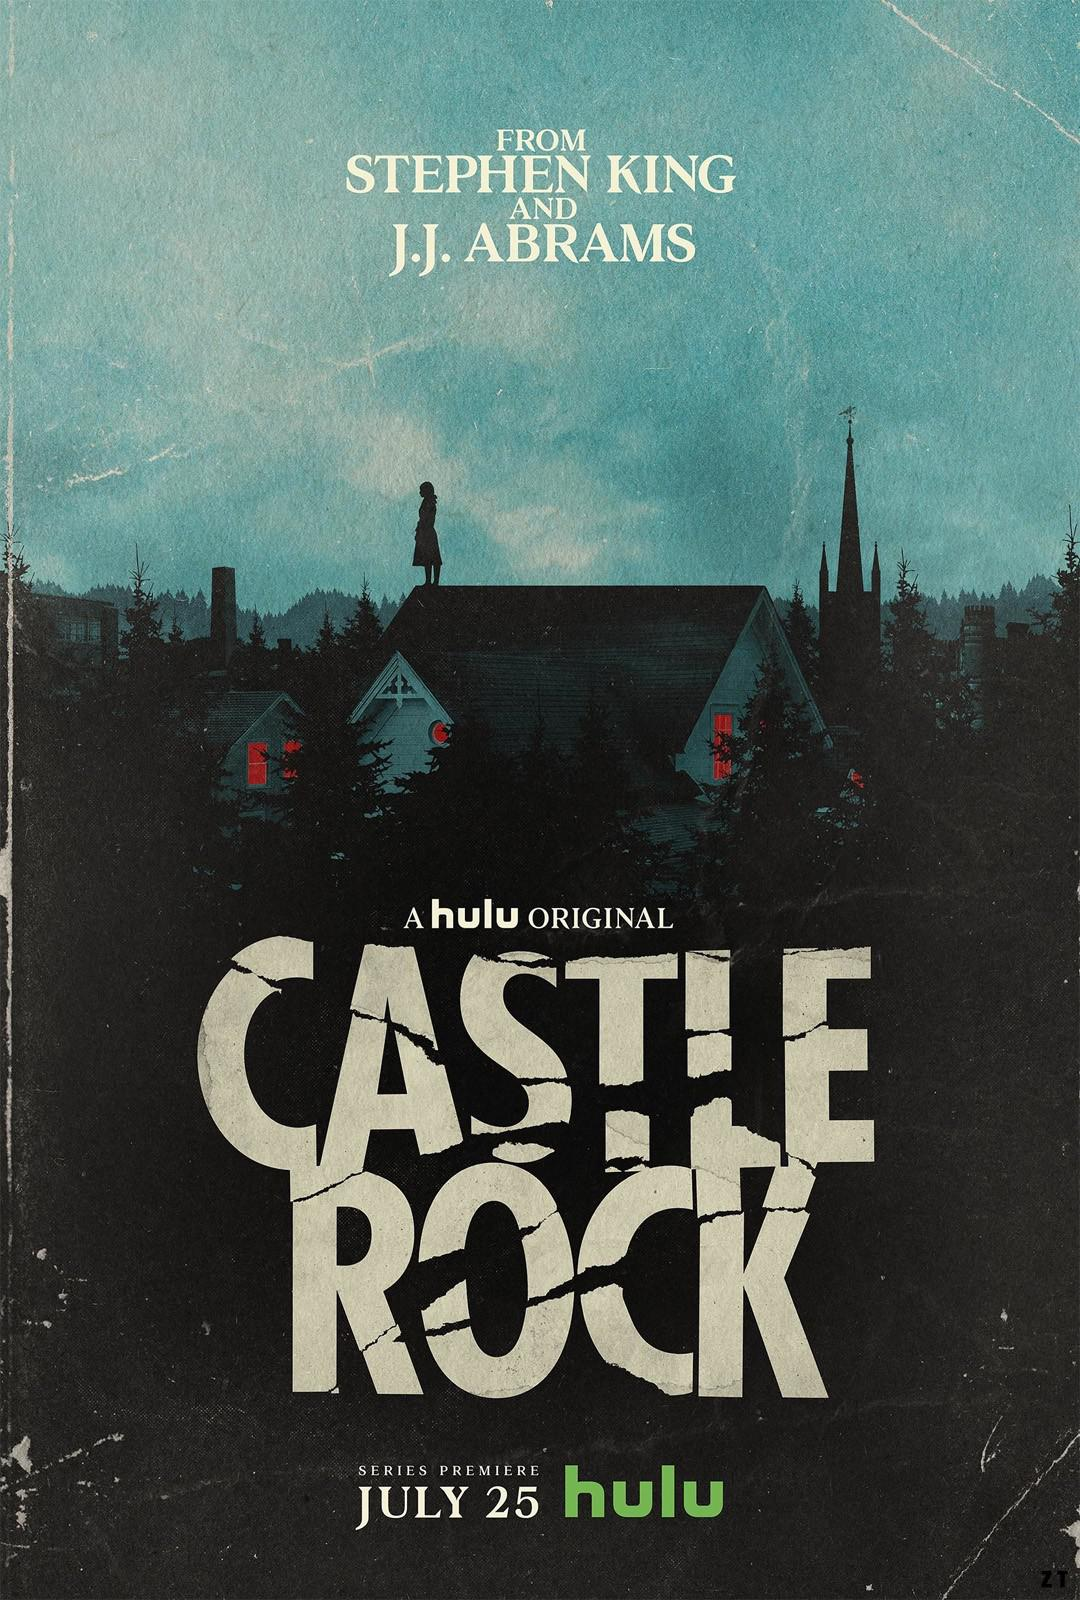 Telecharger Castle Rock- Saison 1 [COMPLETE] [10/10] VOSTFR | Qualité HD 720p